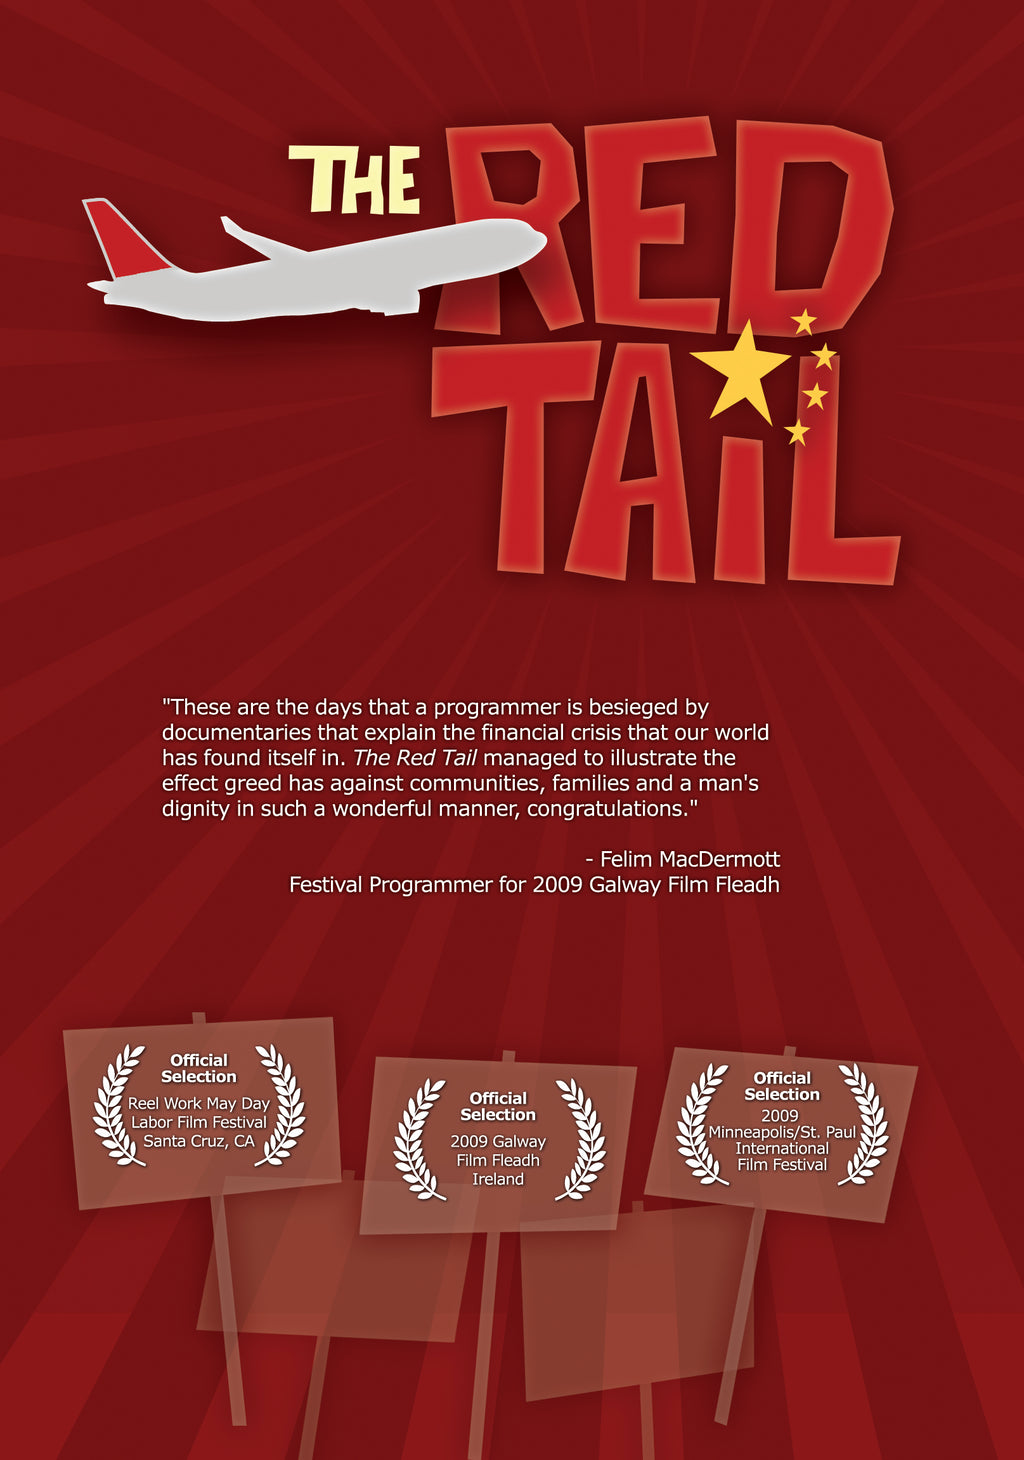 The Red Tail